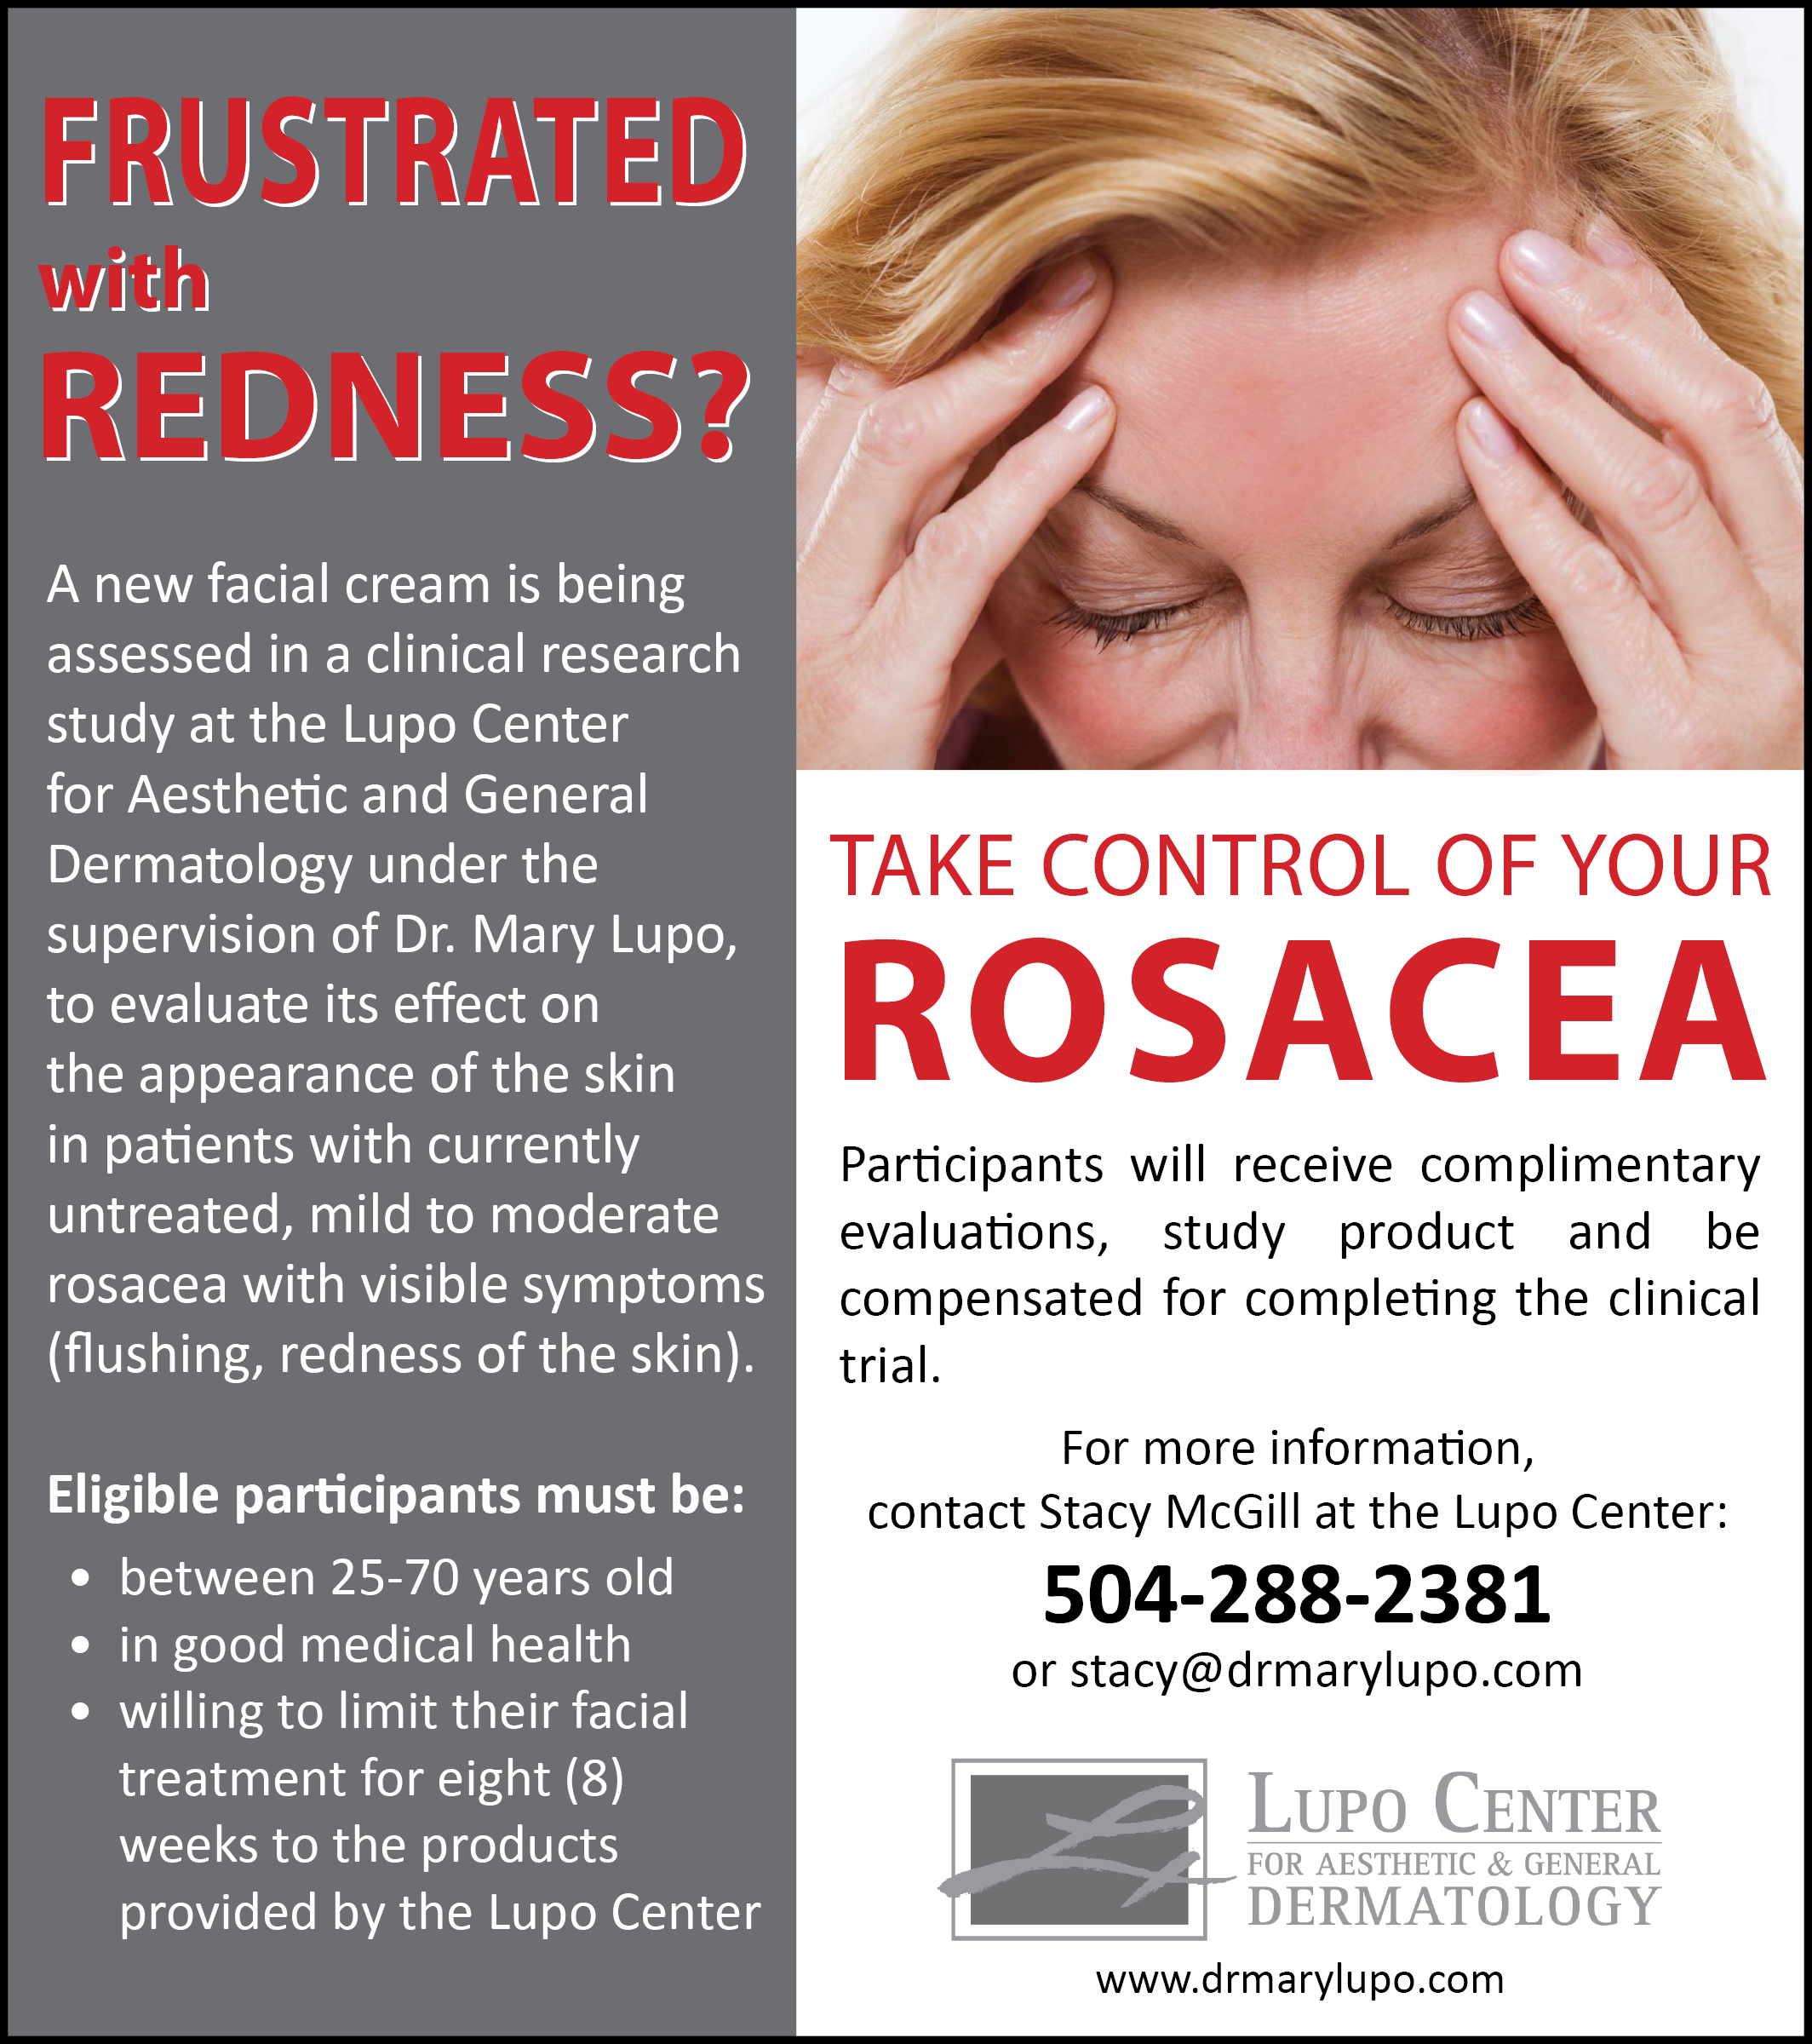 Take control of your rosacea